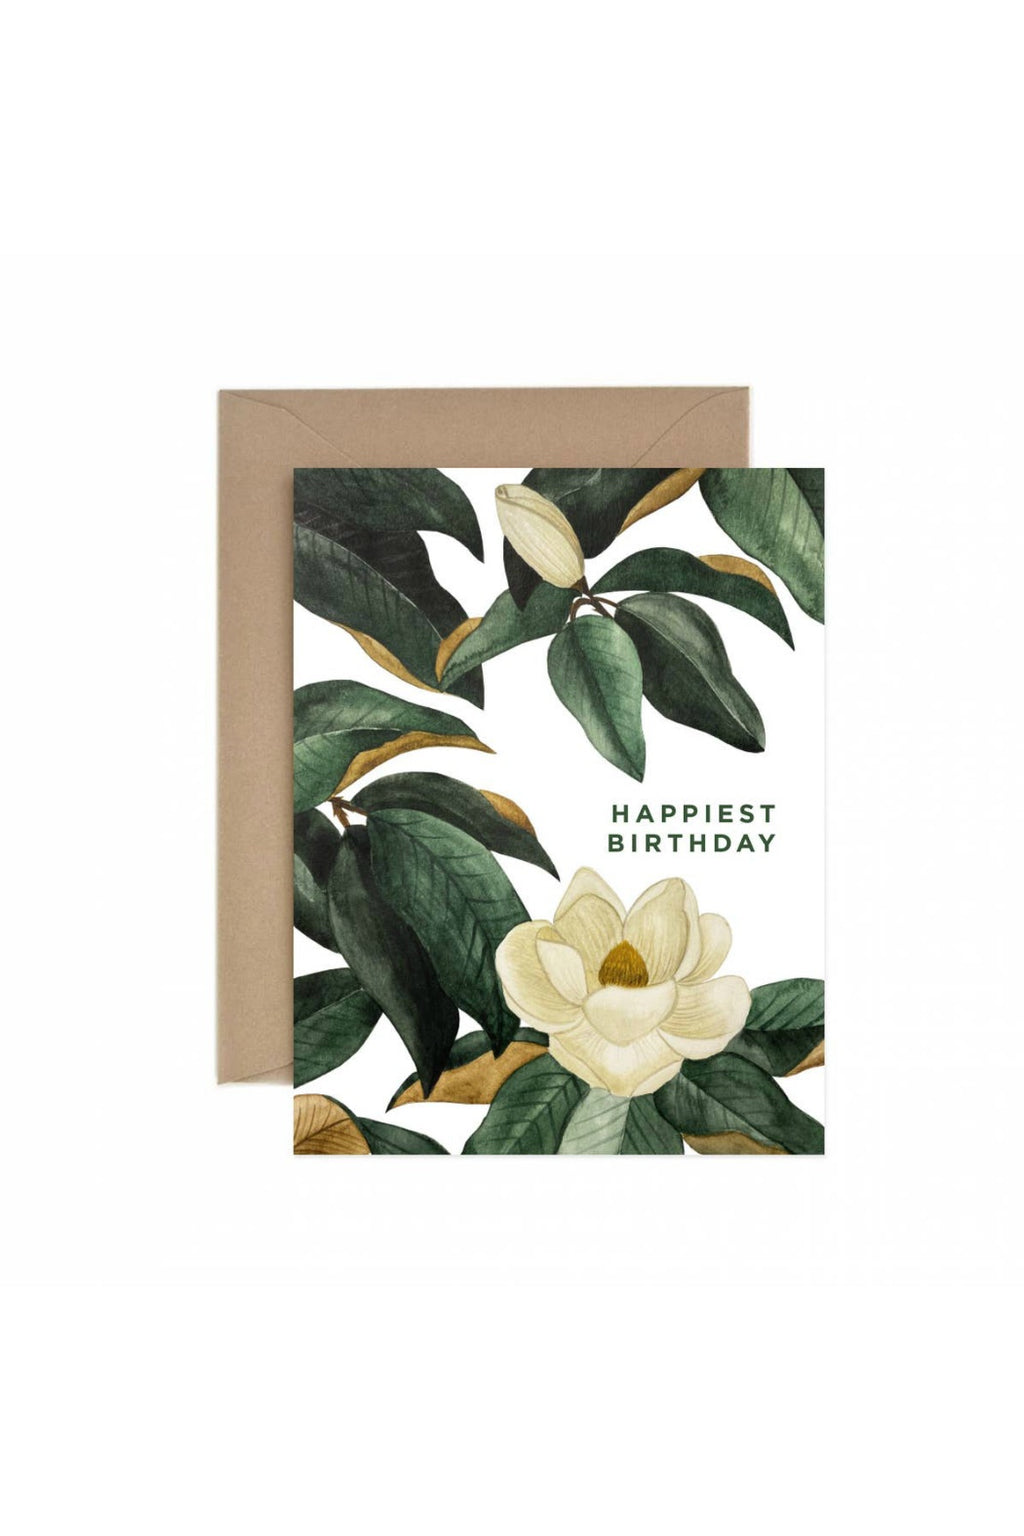 Paper Anchor Co. Magnolia Happiest Birthday Greeting